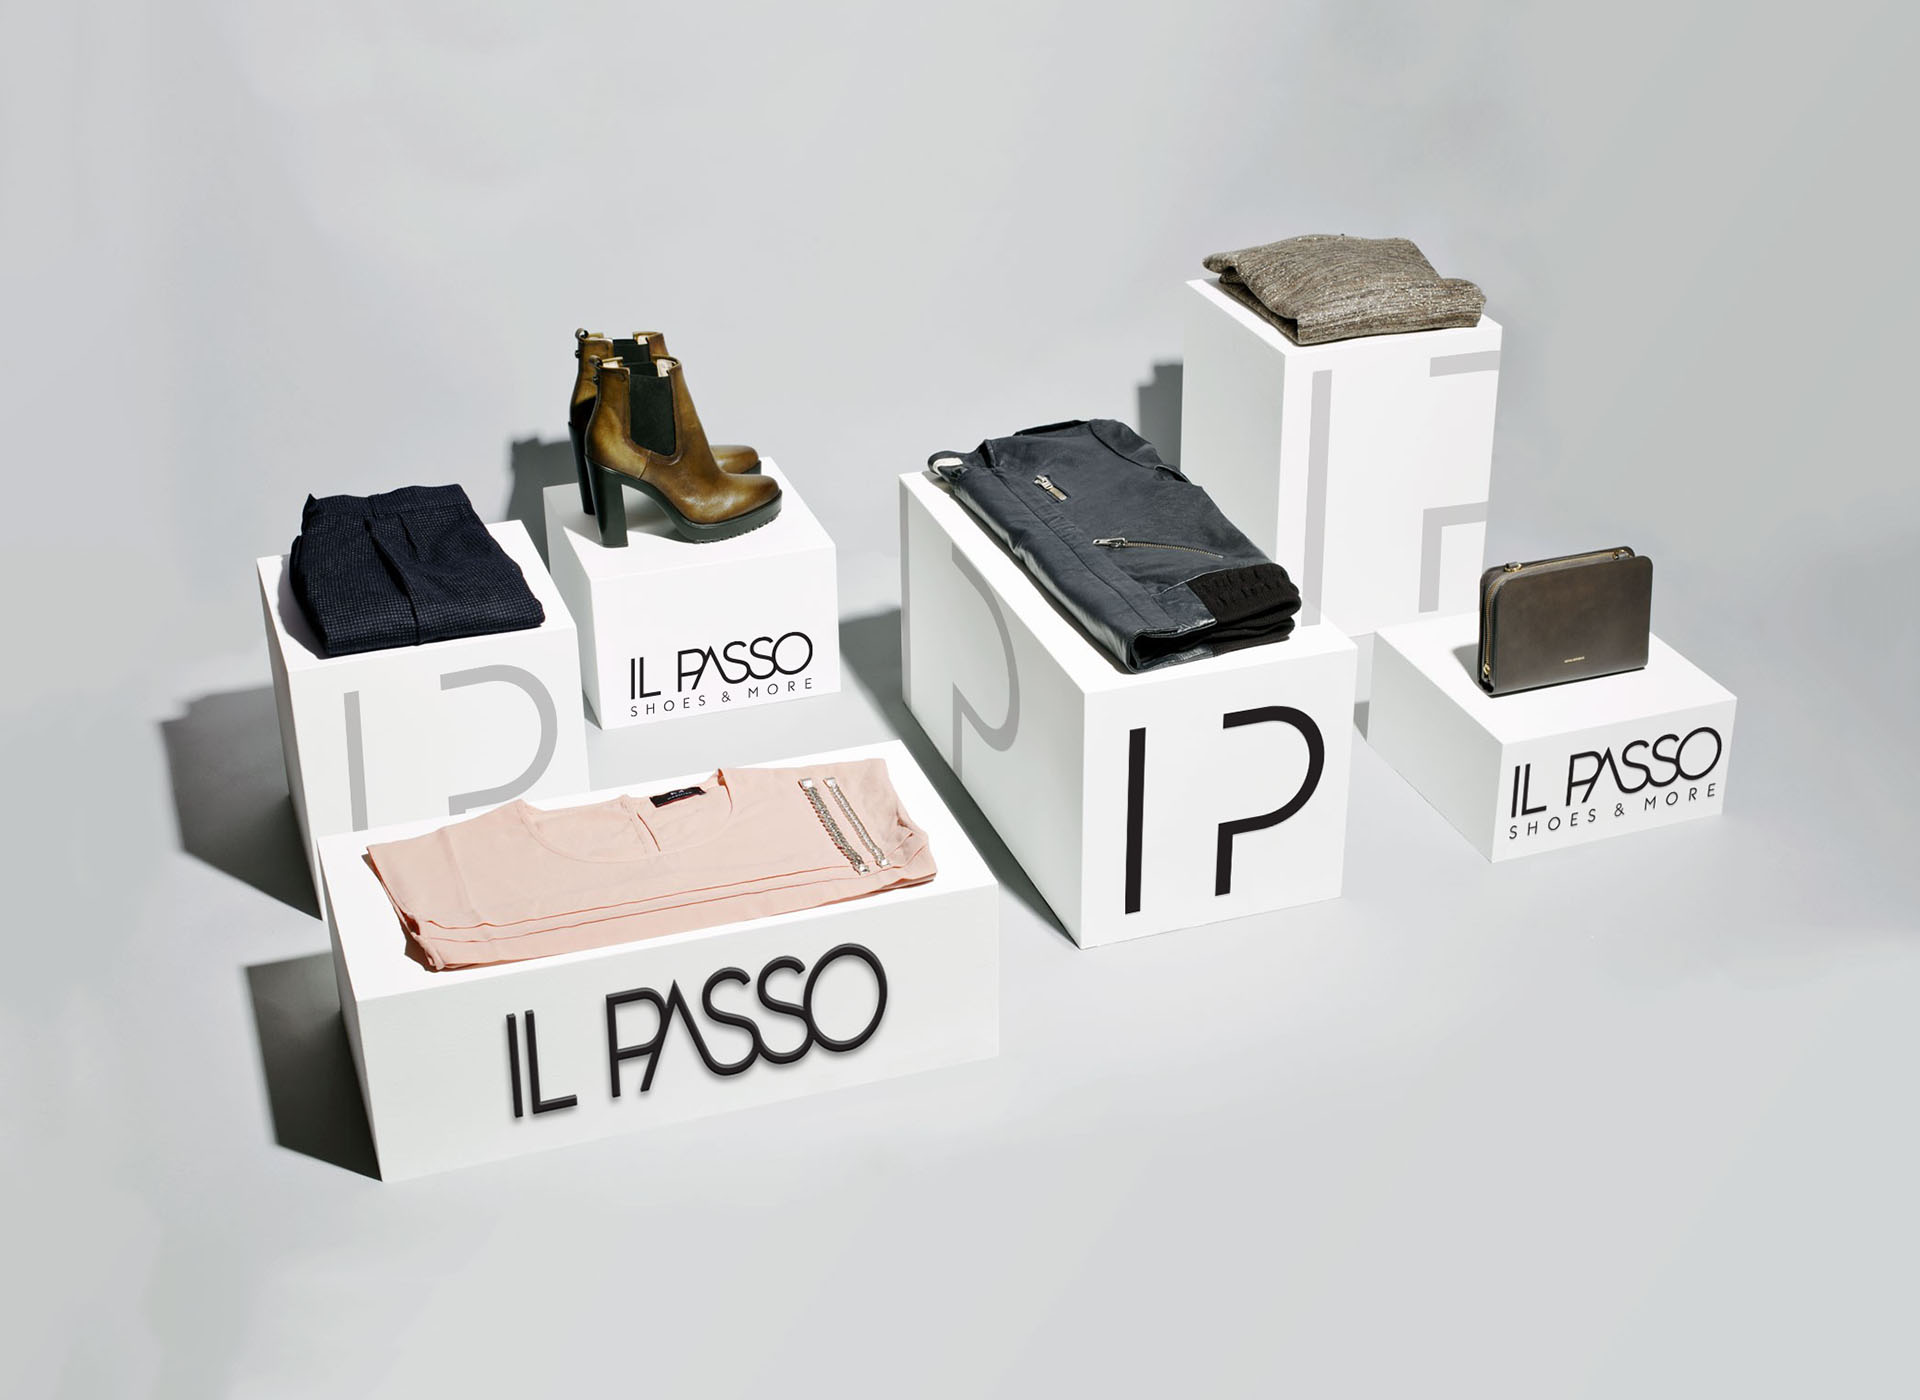 ilpasso shoe stands